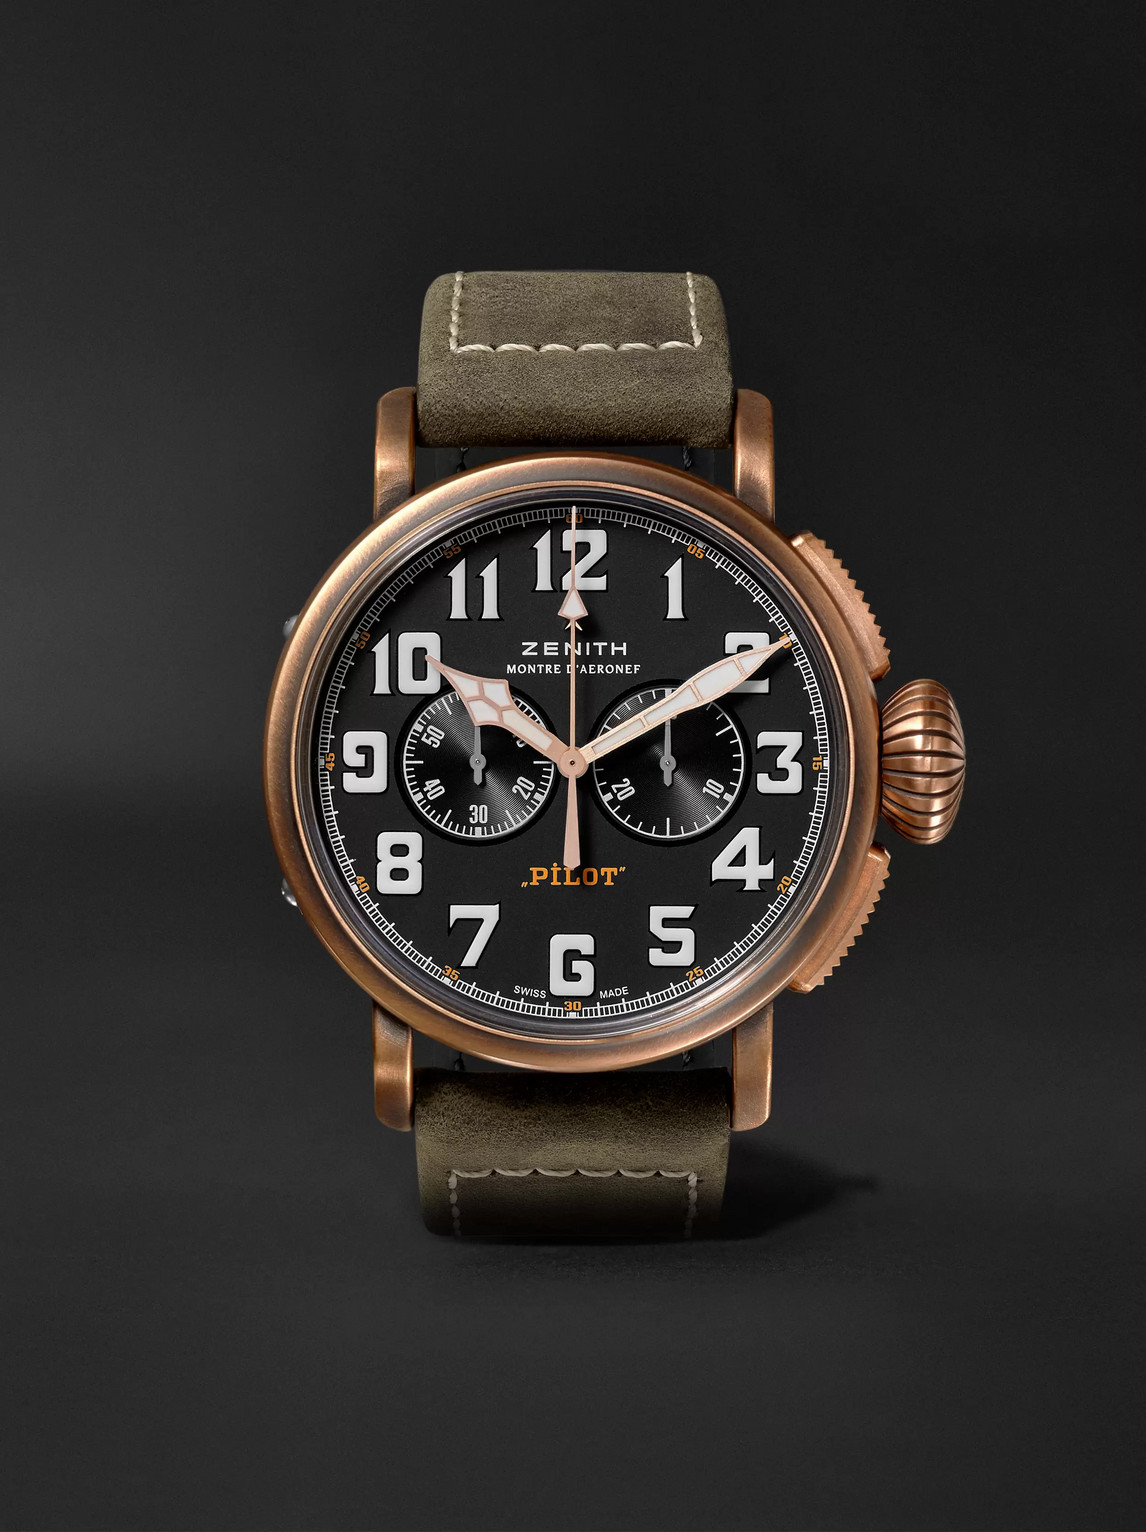 Zenith Pilot Type 20 Extra Special Automatic Chronograph 45mm Bronze And Nubuck Watch, Ref. No. 29.2430.406 In Black